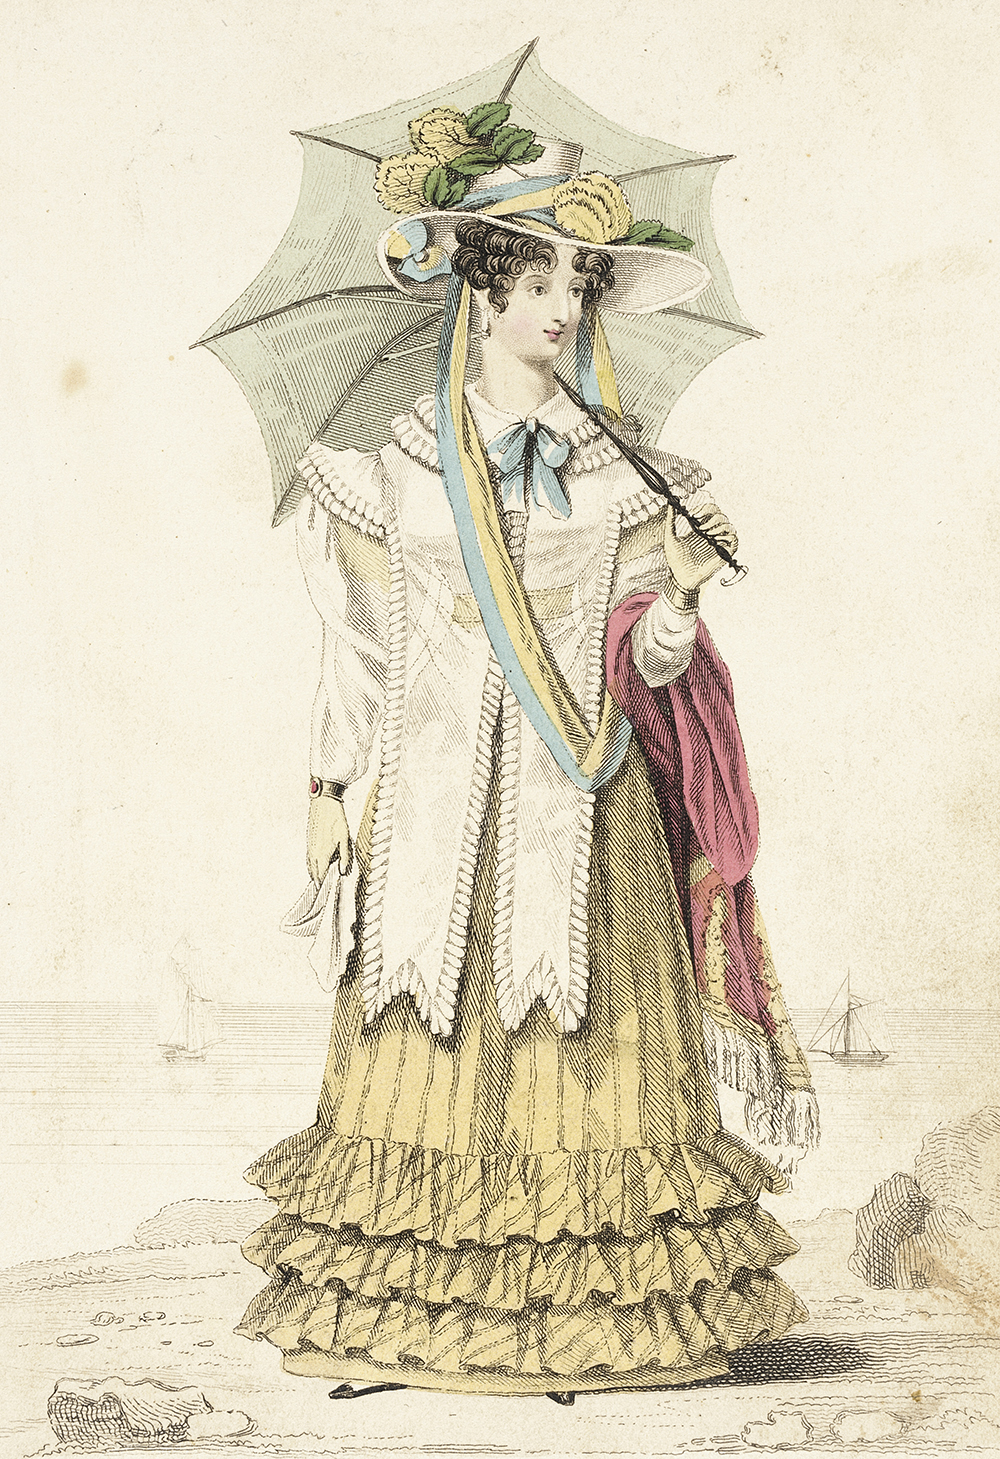 """""""Sea Side Dress"""" fashion plate for La Belle Assemblée, by G.B. Whittaker, 1826. Los Angeles County Museum of Art, Gift of Dr. and Mrs. Gerald Labiner."""